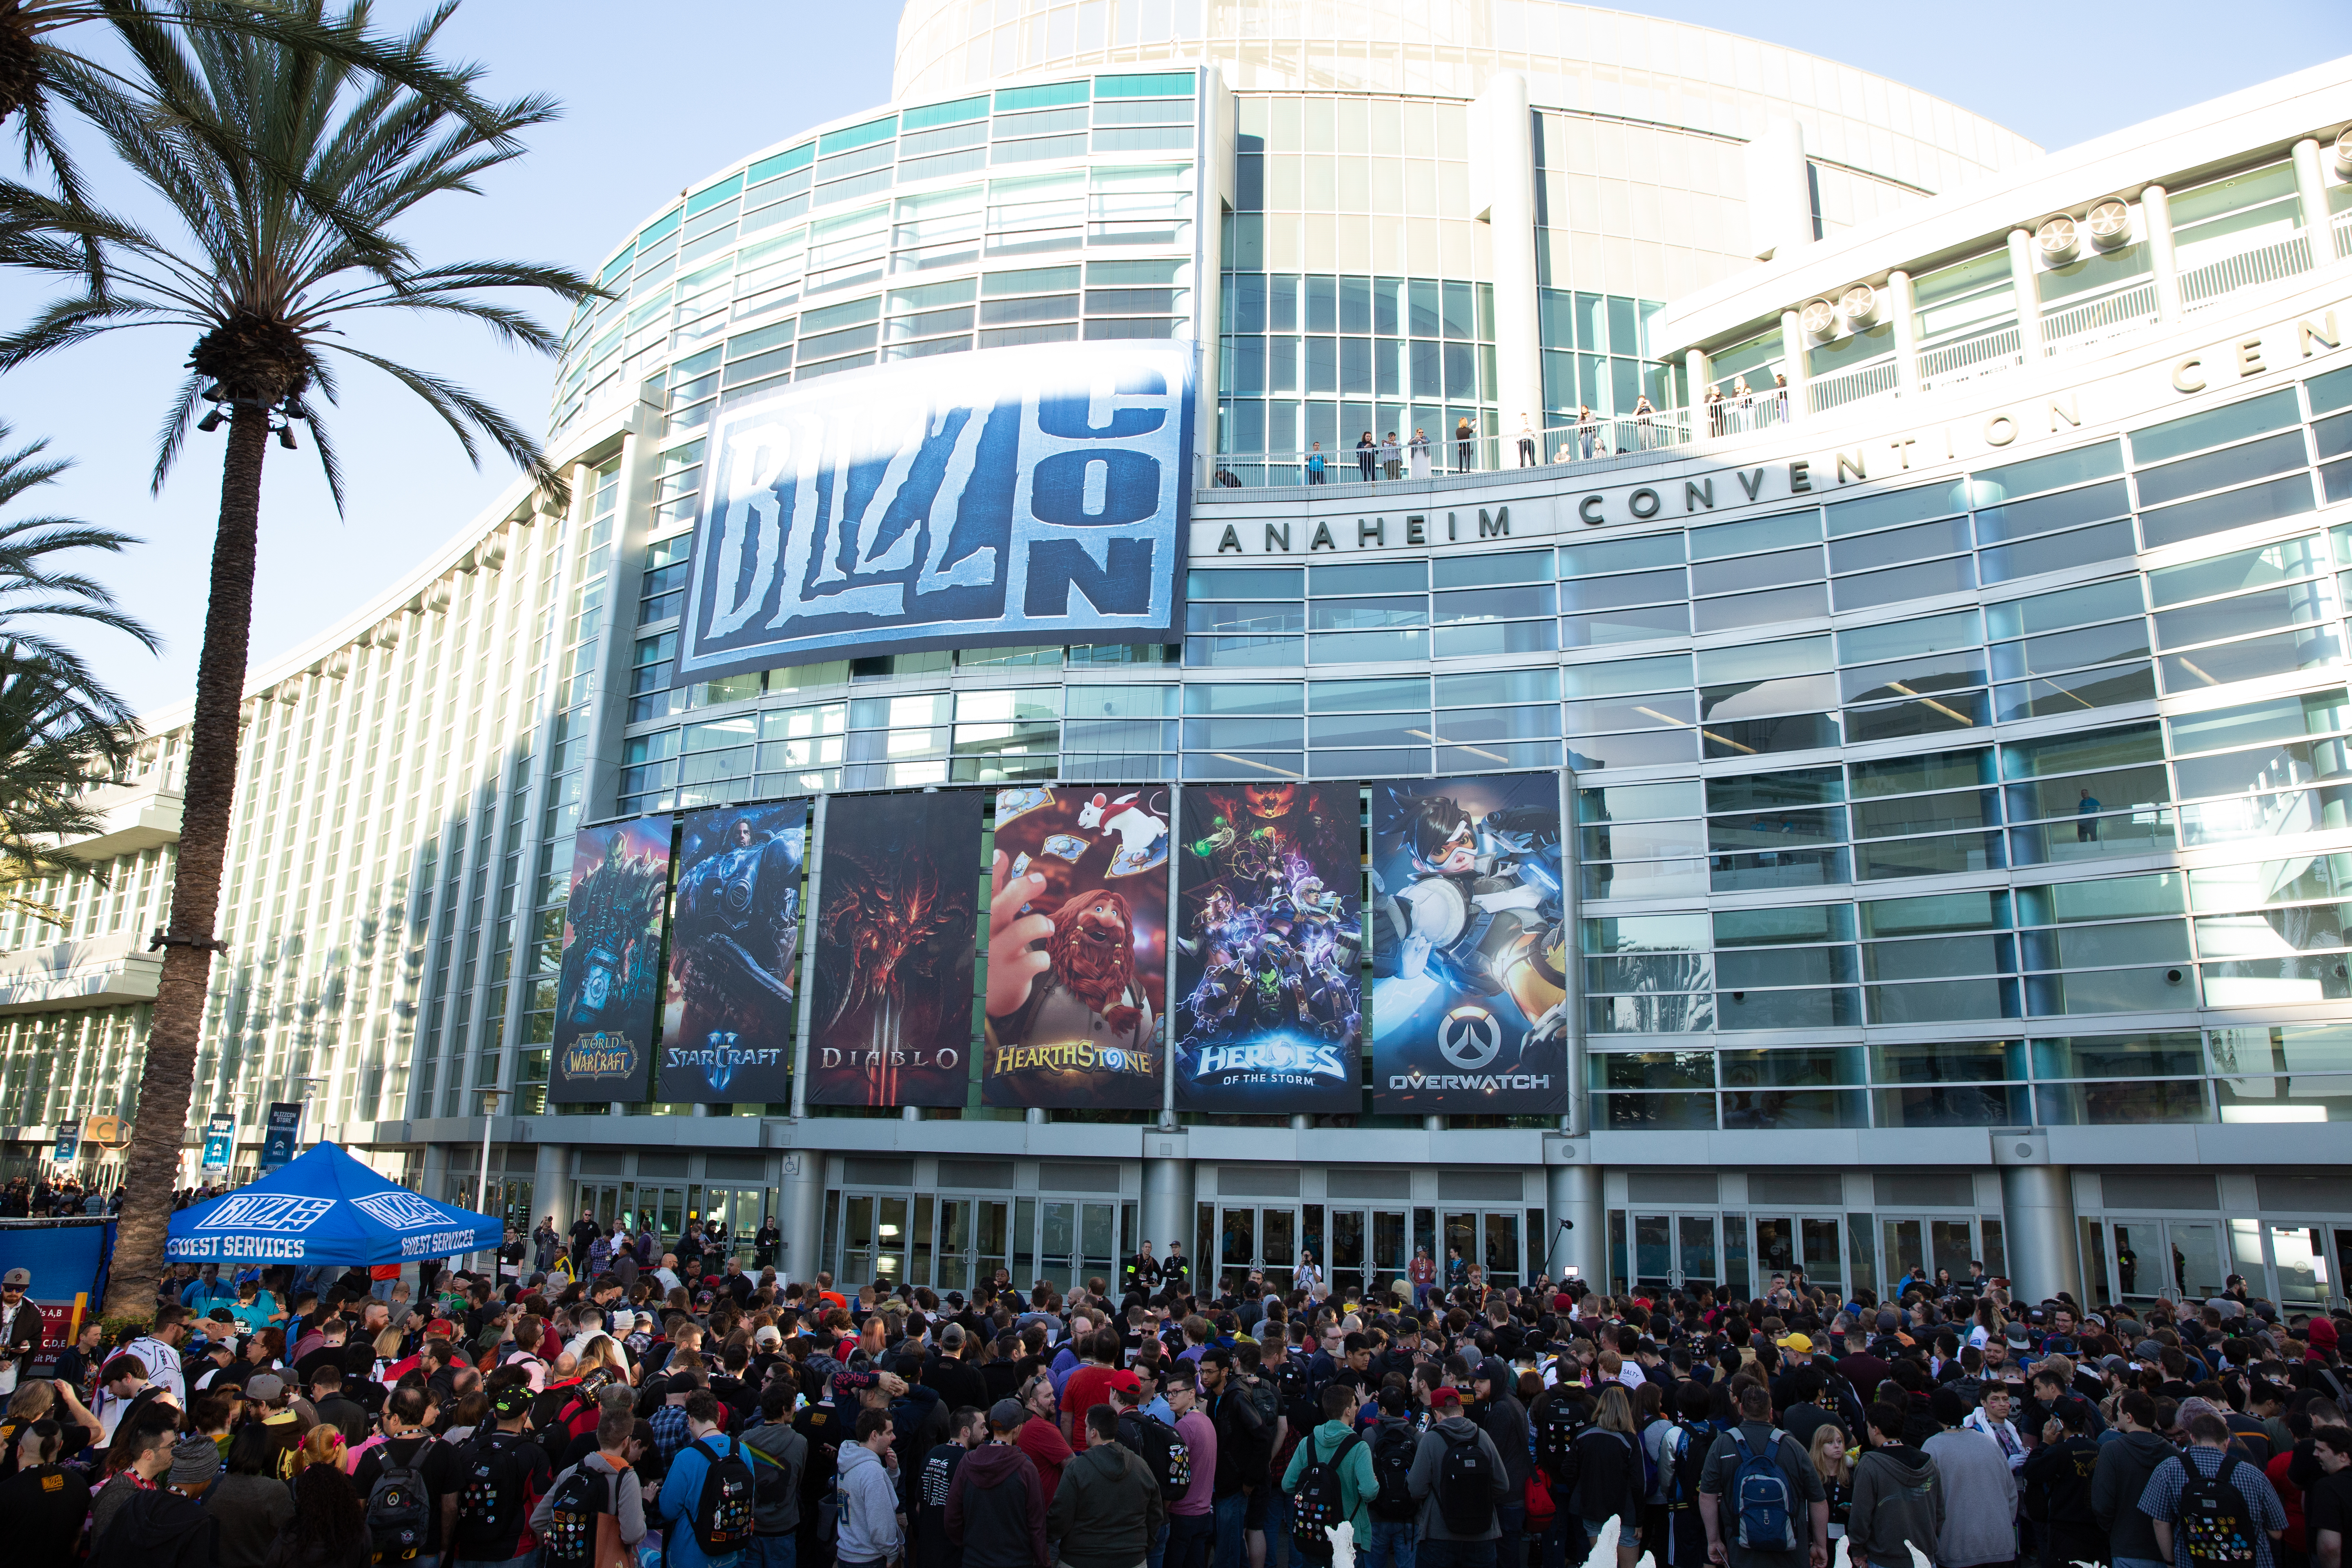 Legendary Game Universes and Esports Superstars Take Center